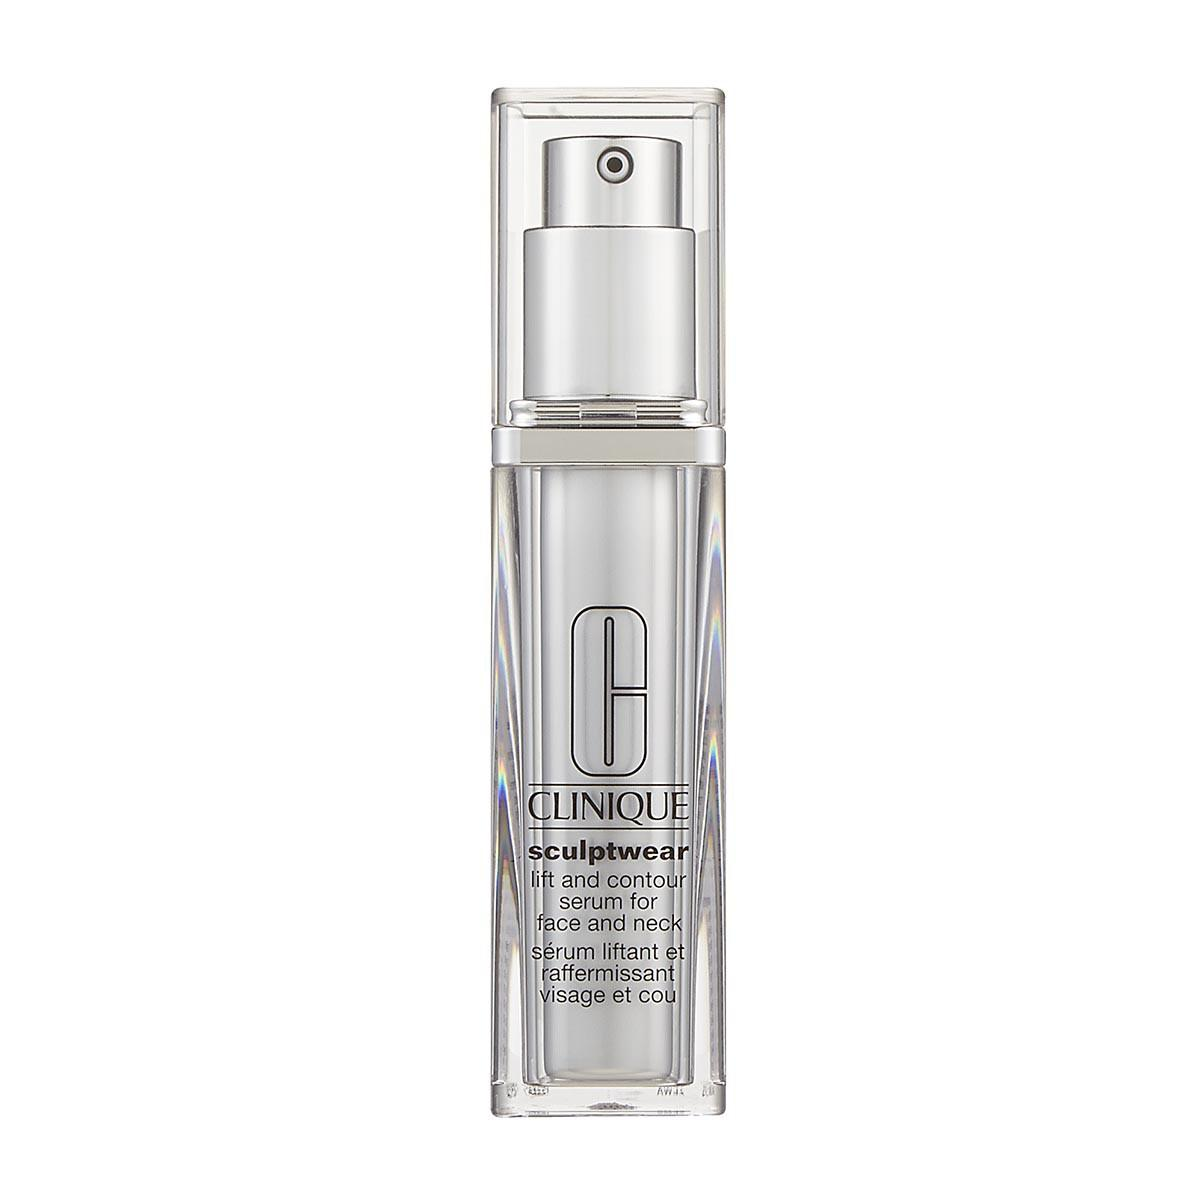 Clinique Sculptwear Lift And Contour Serum For Face And Neck 30 ml